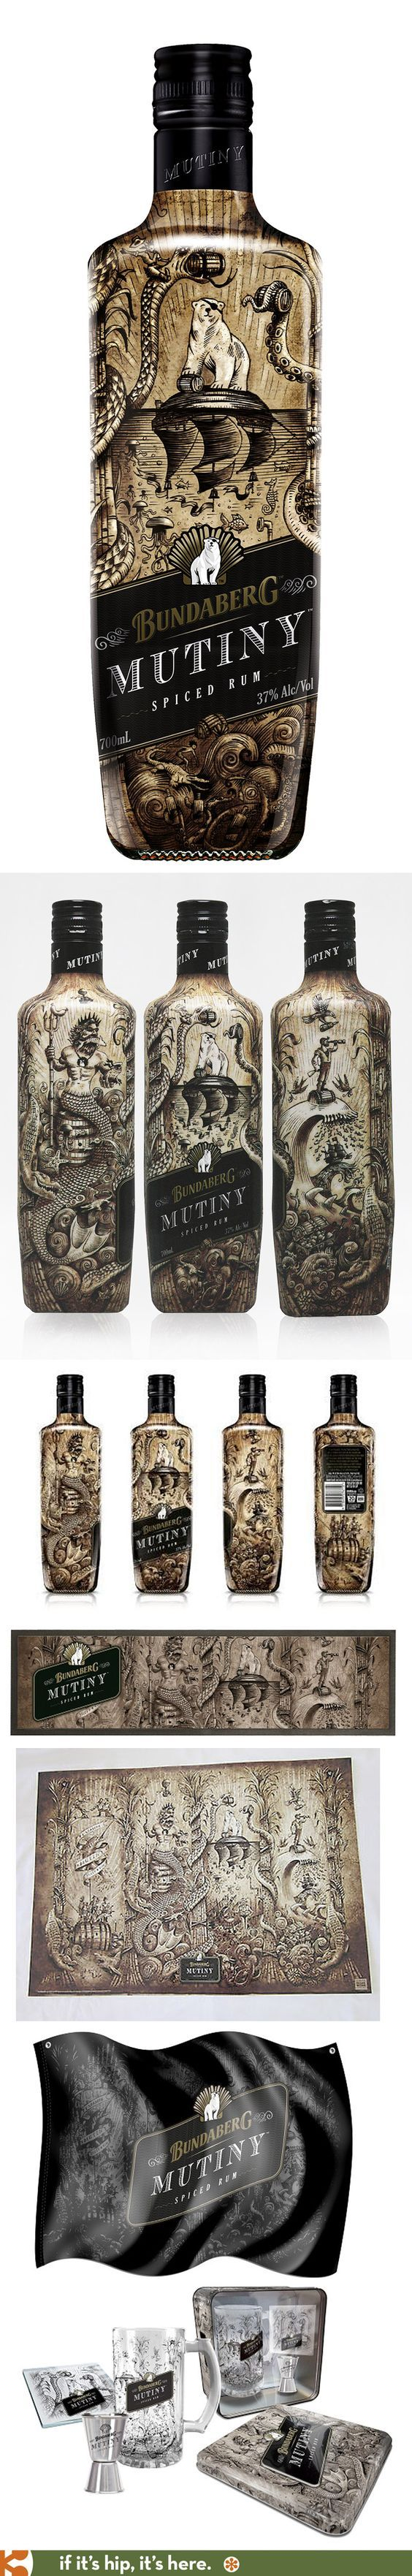 Australia's Bundaberg Mutiny Spiced Rum has a wonderfully illustrated #bottle and collateral pieces PD #design #bottledesign: